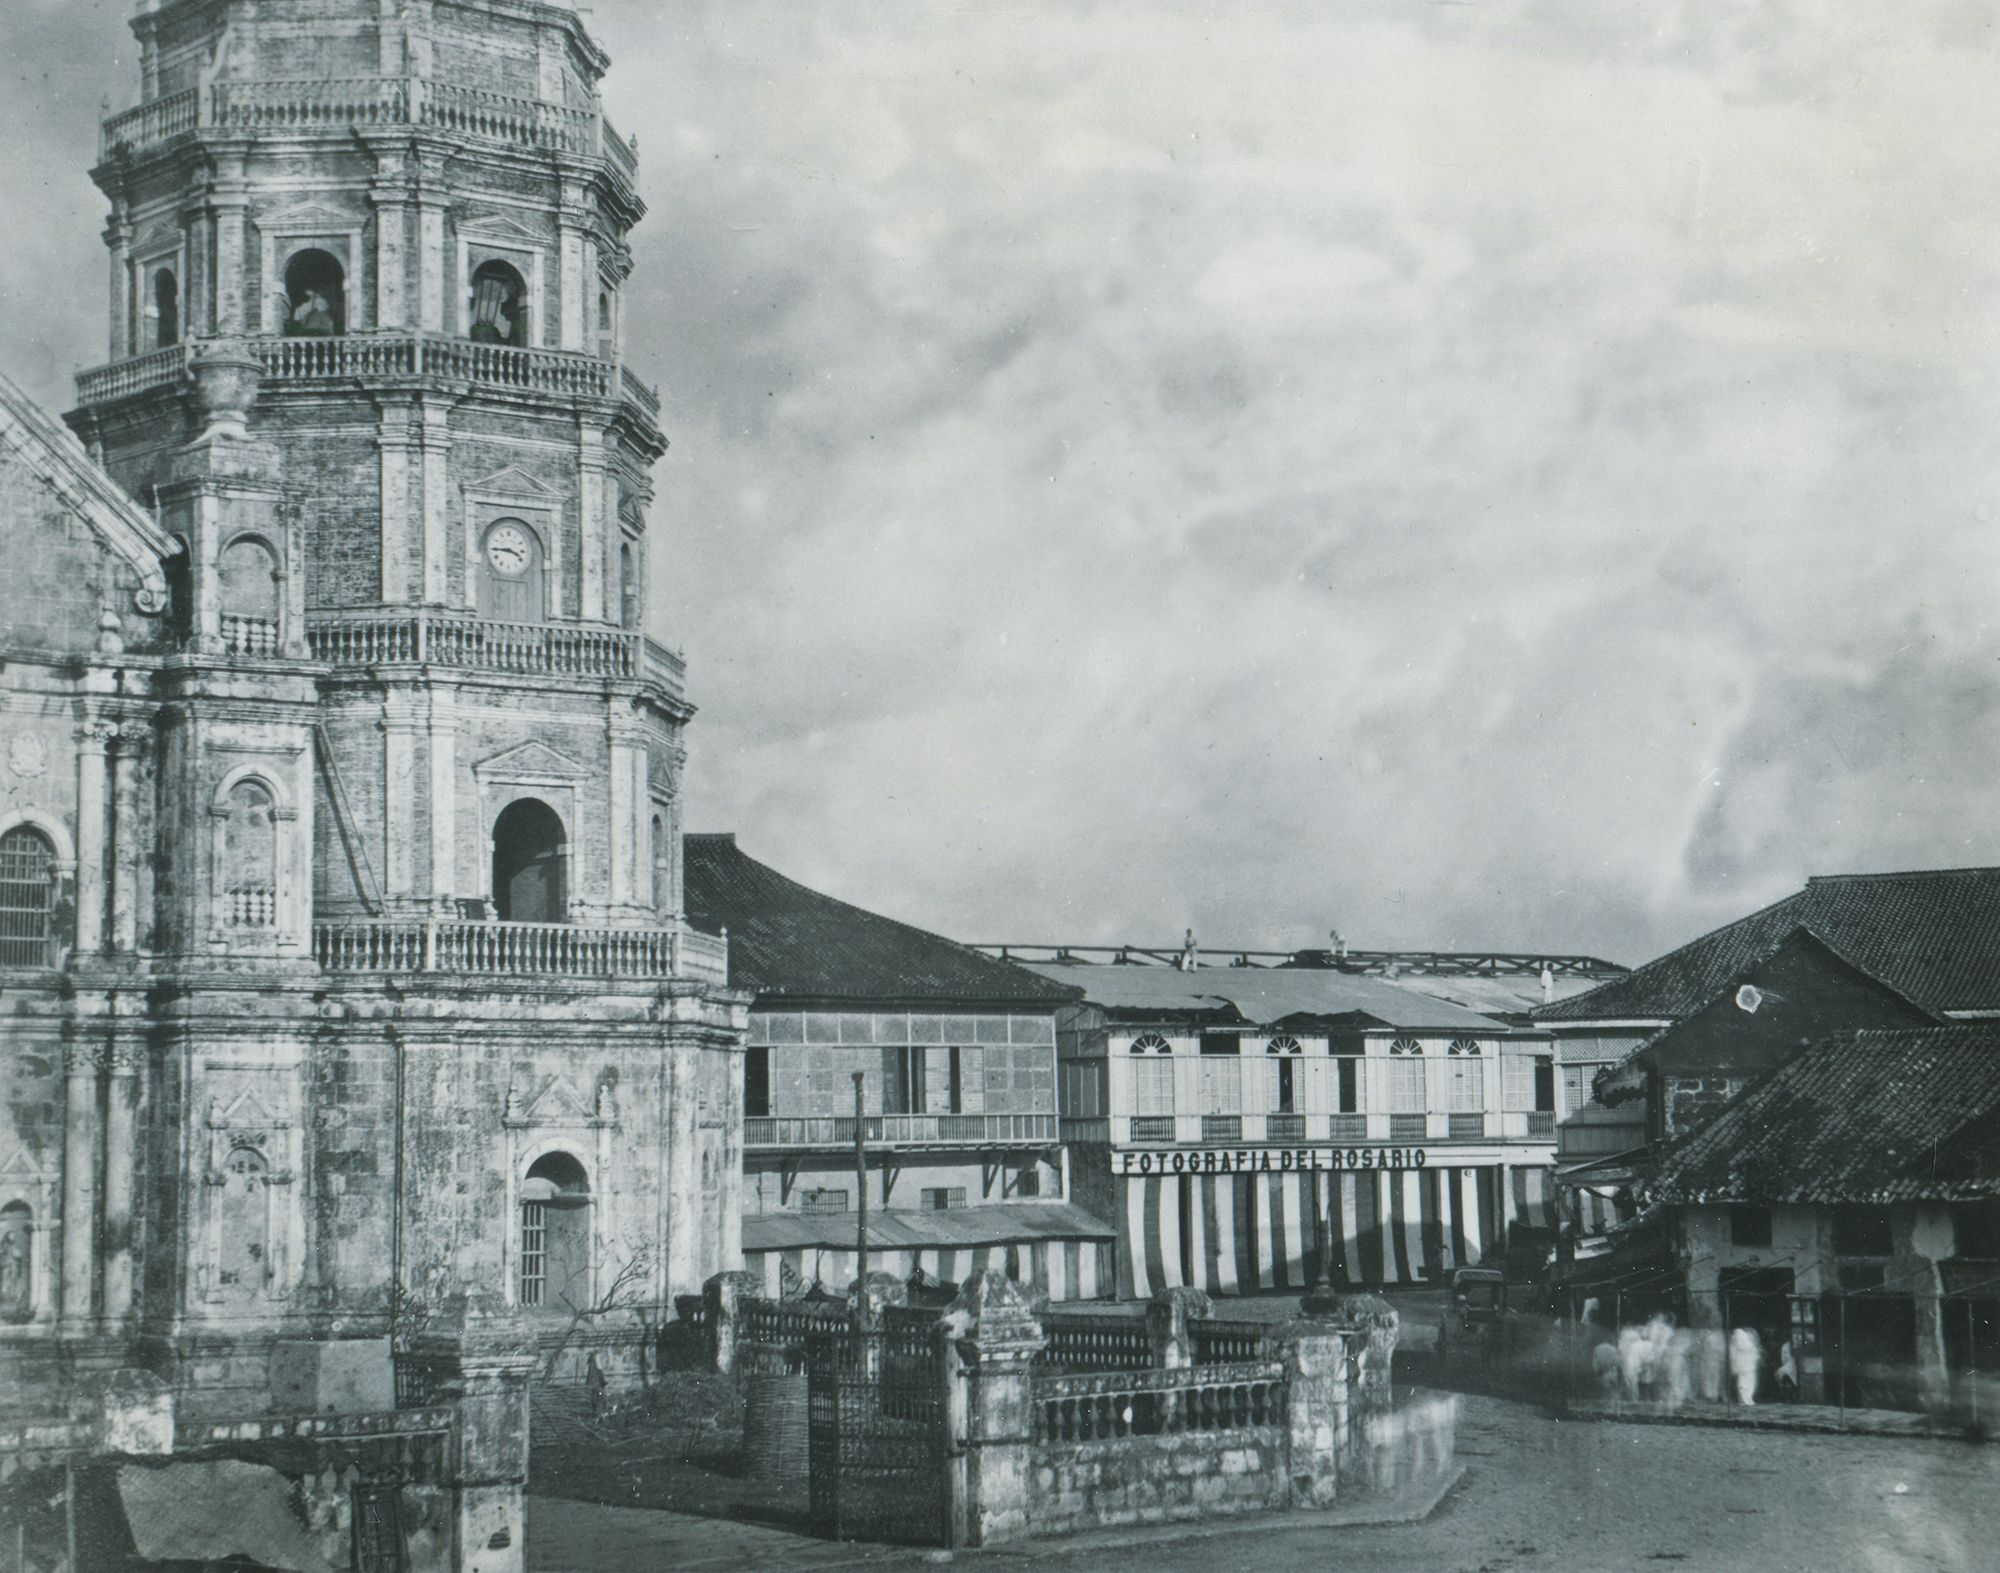 OPINION: How Important Is The Preservation And Restoration Of Historic Landmarks In The Philippines?